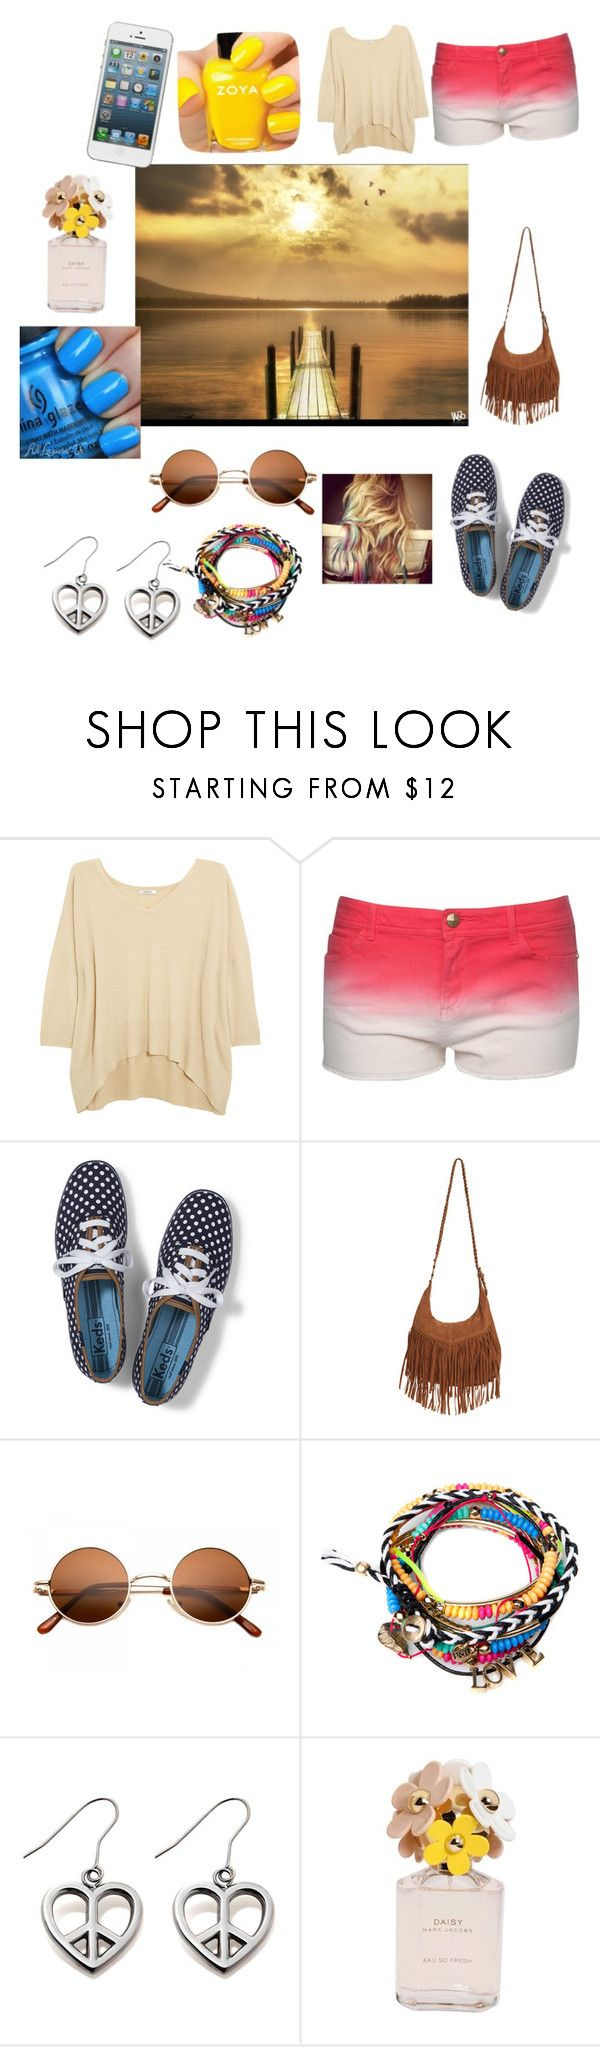 """""""Summer by the lake look"""" by hannah-collins-1 ❤ liked on Polyvore featuring Zoya, N.Peal, Jane Norman, Keds, Wet Seal, Pull&Bear, Marc Jacobs and China Glaze"""